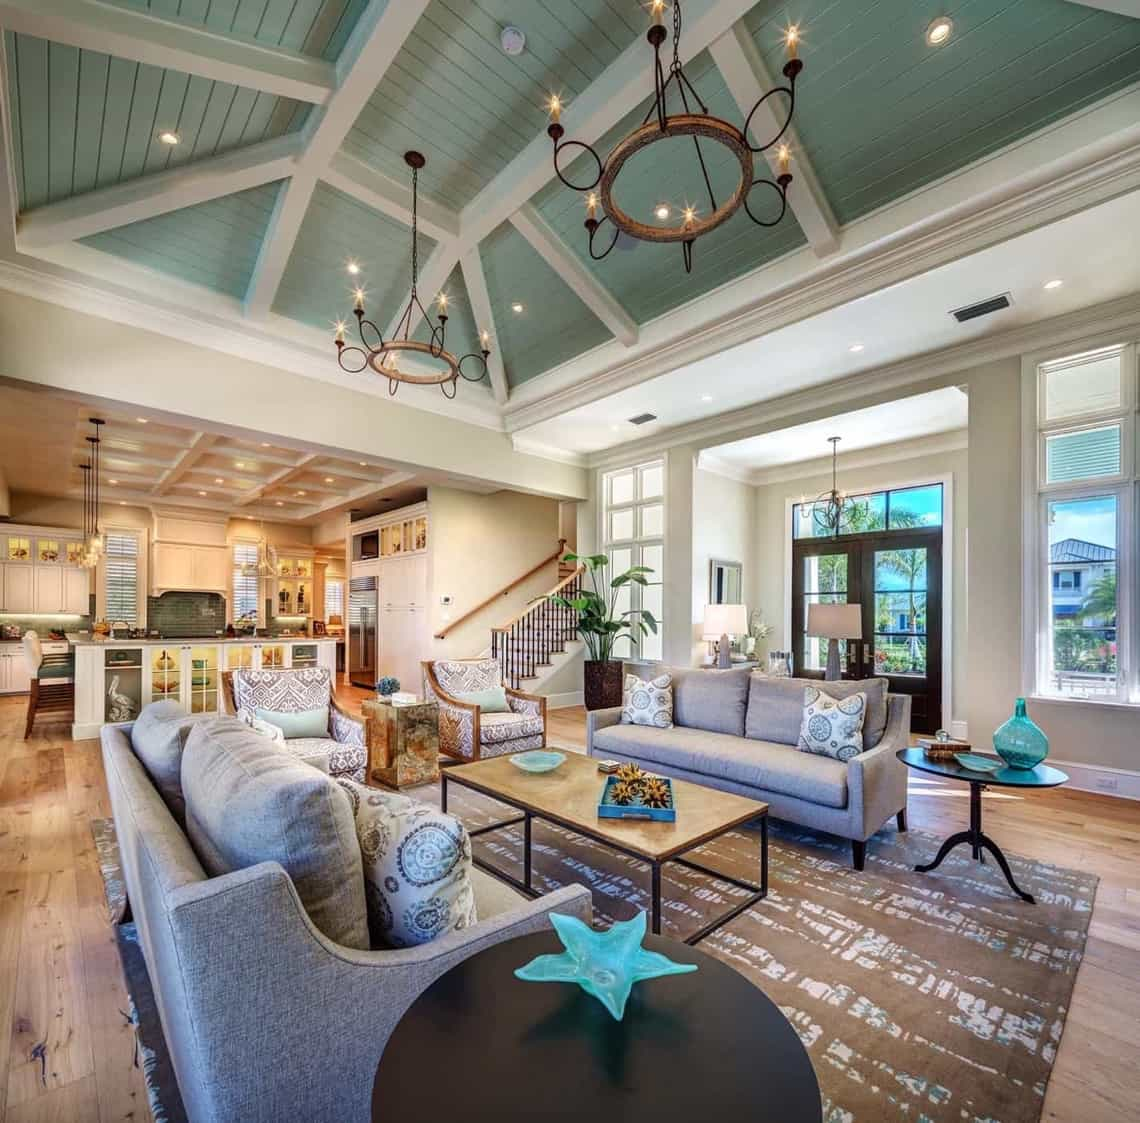 Featured Image of Wonderful Open Concept Coastal Living Room With Sage Green Vaulted Ceiling